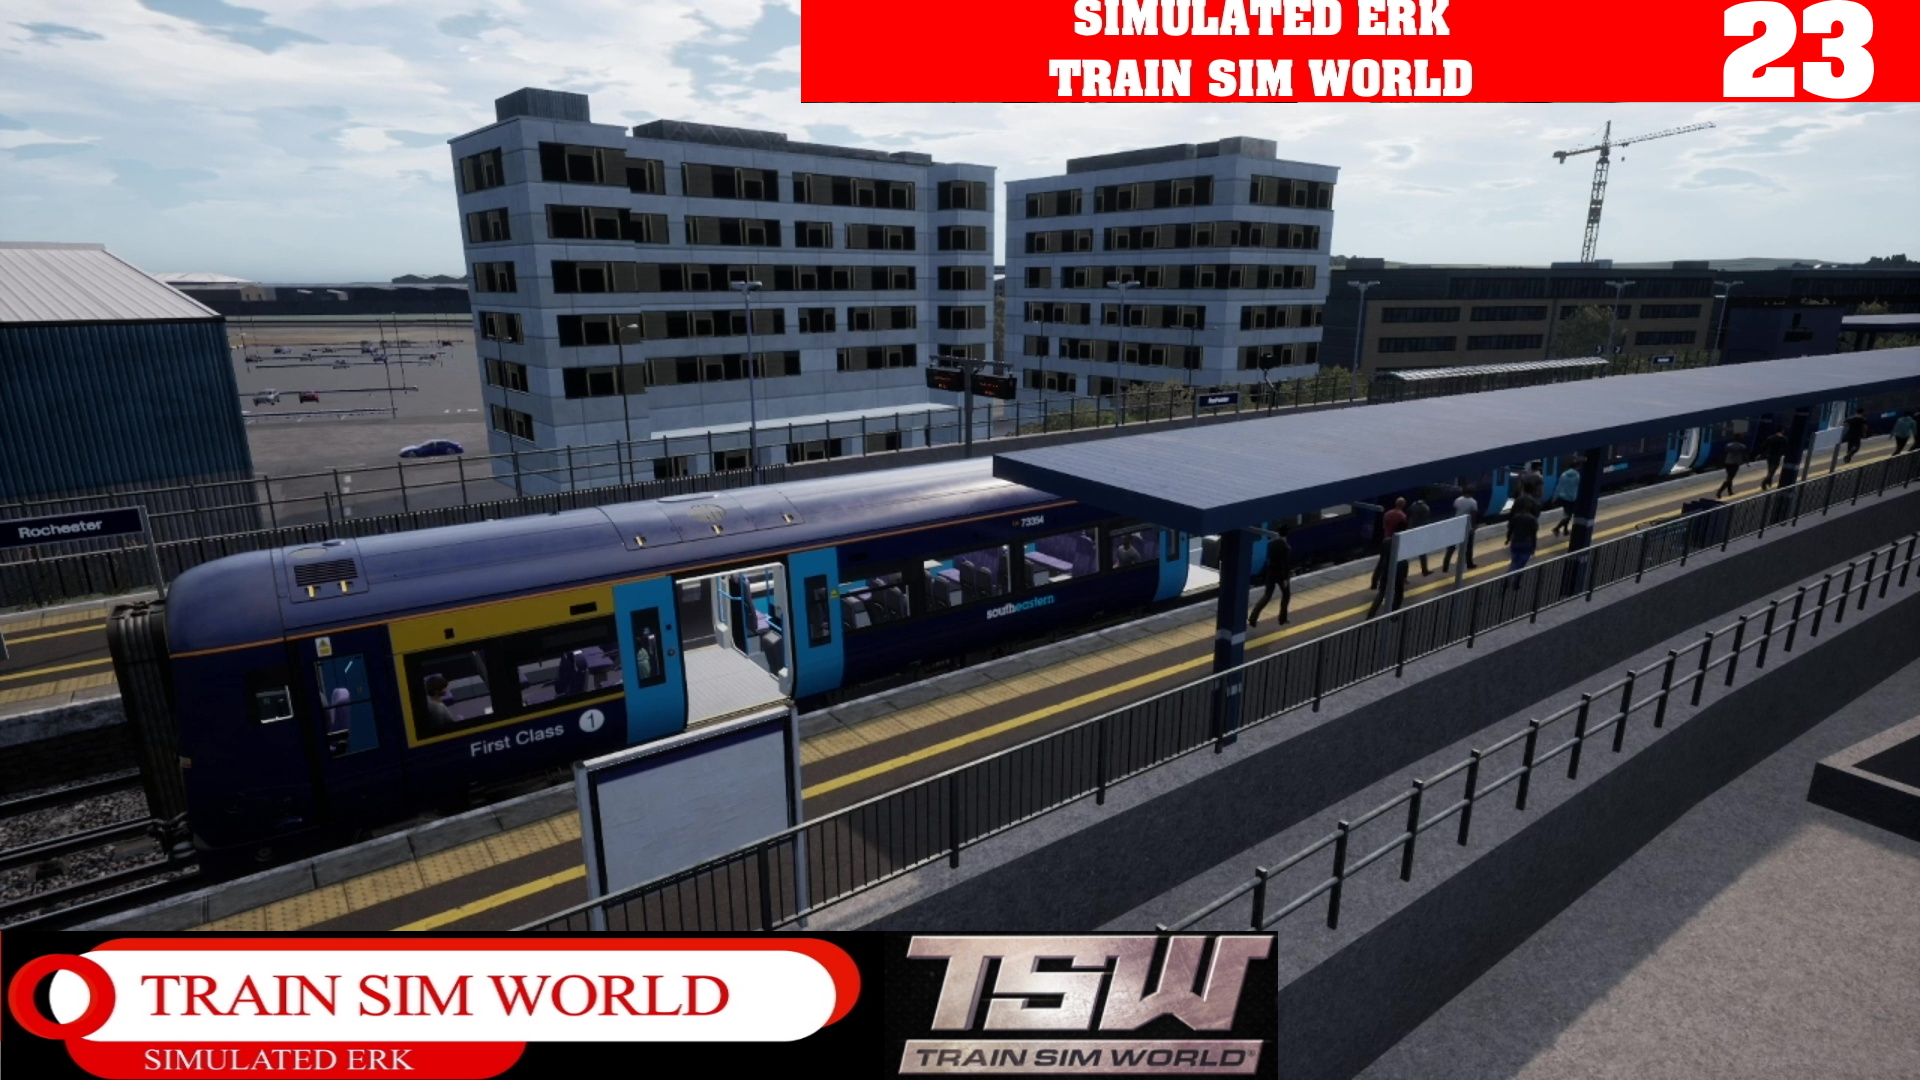 Simulated Erk: Train Sim World episode 23 | Welcome To Southeastern Highspeed